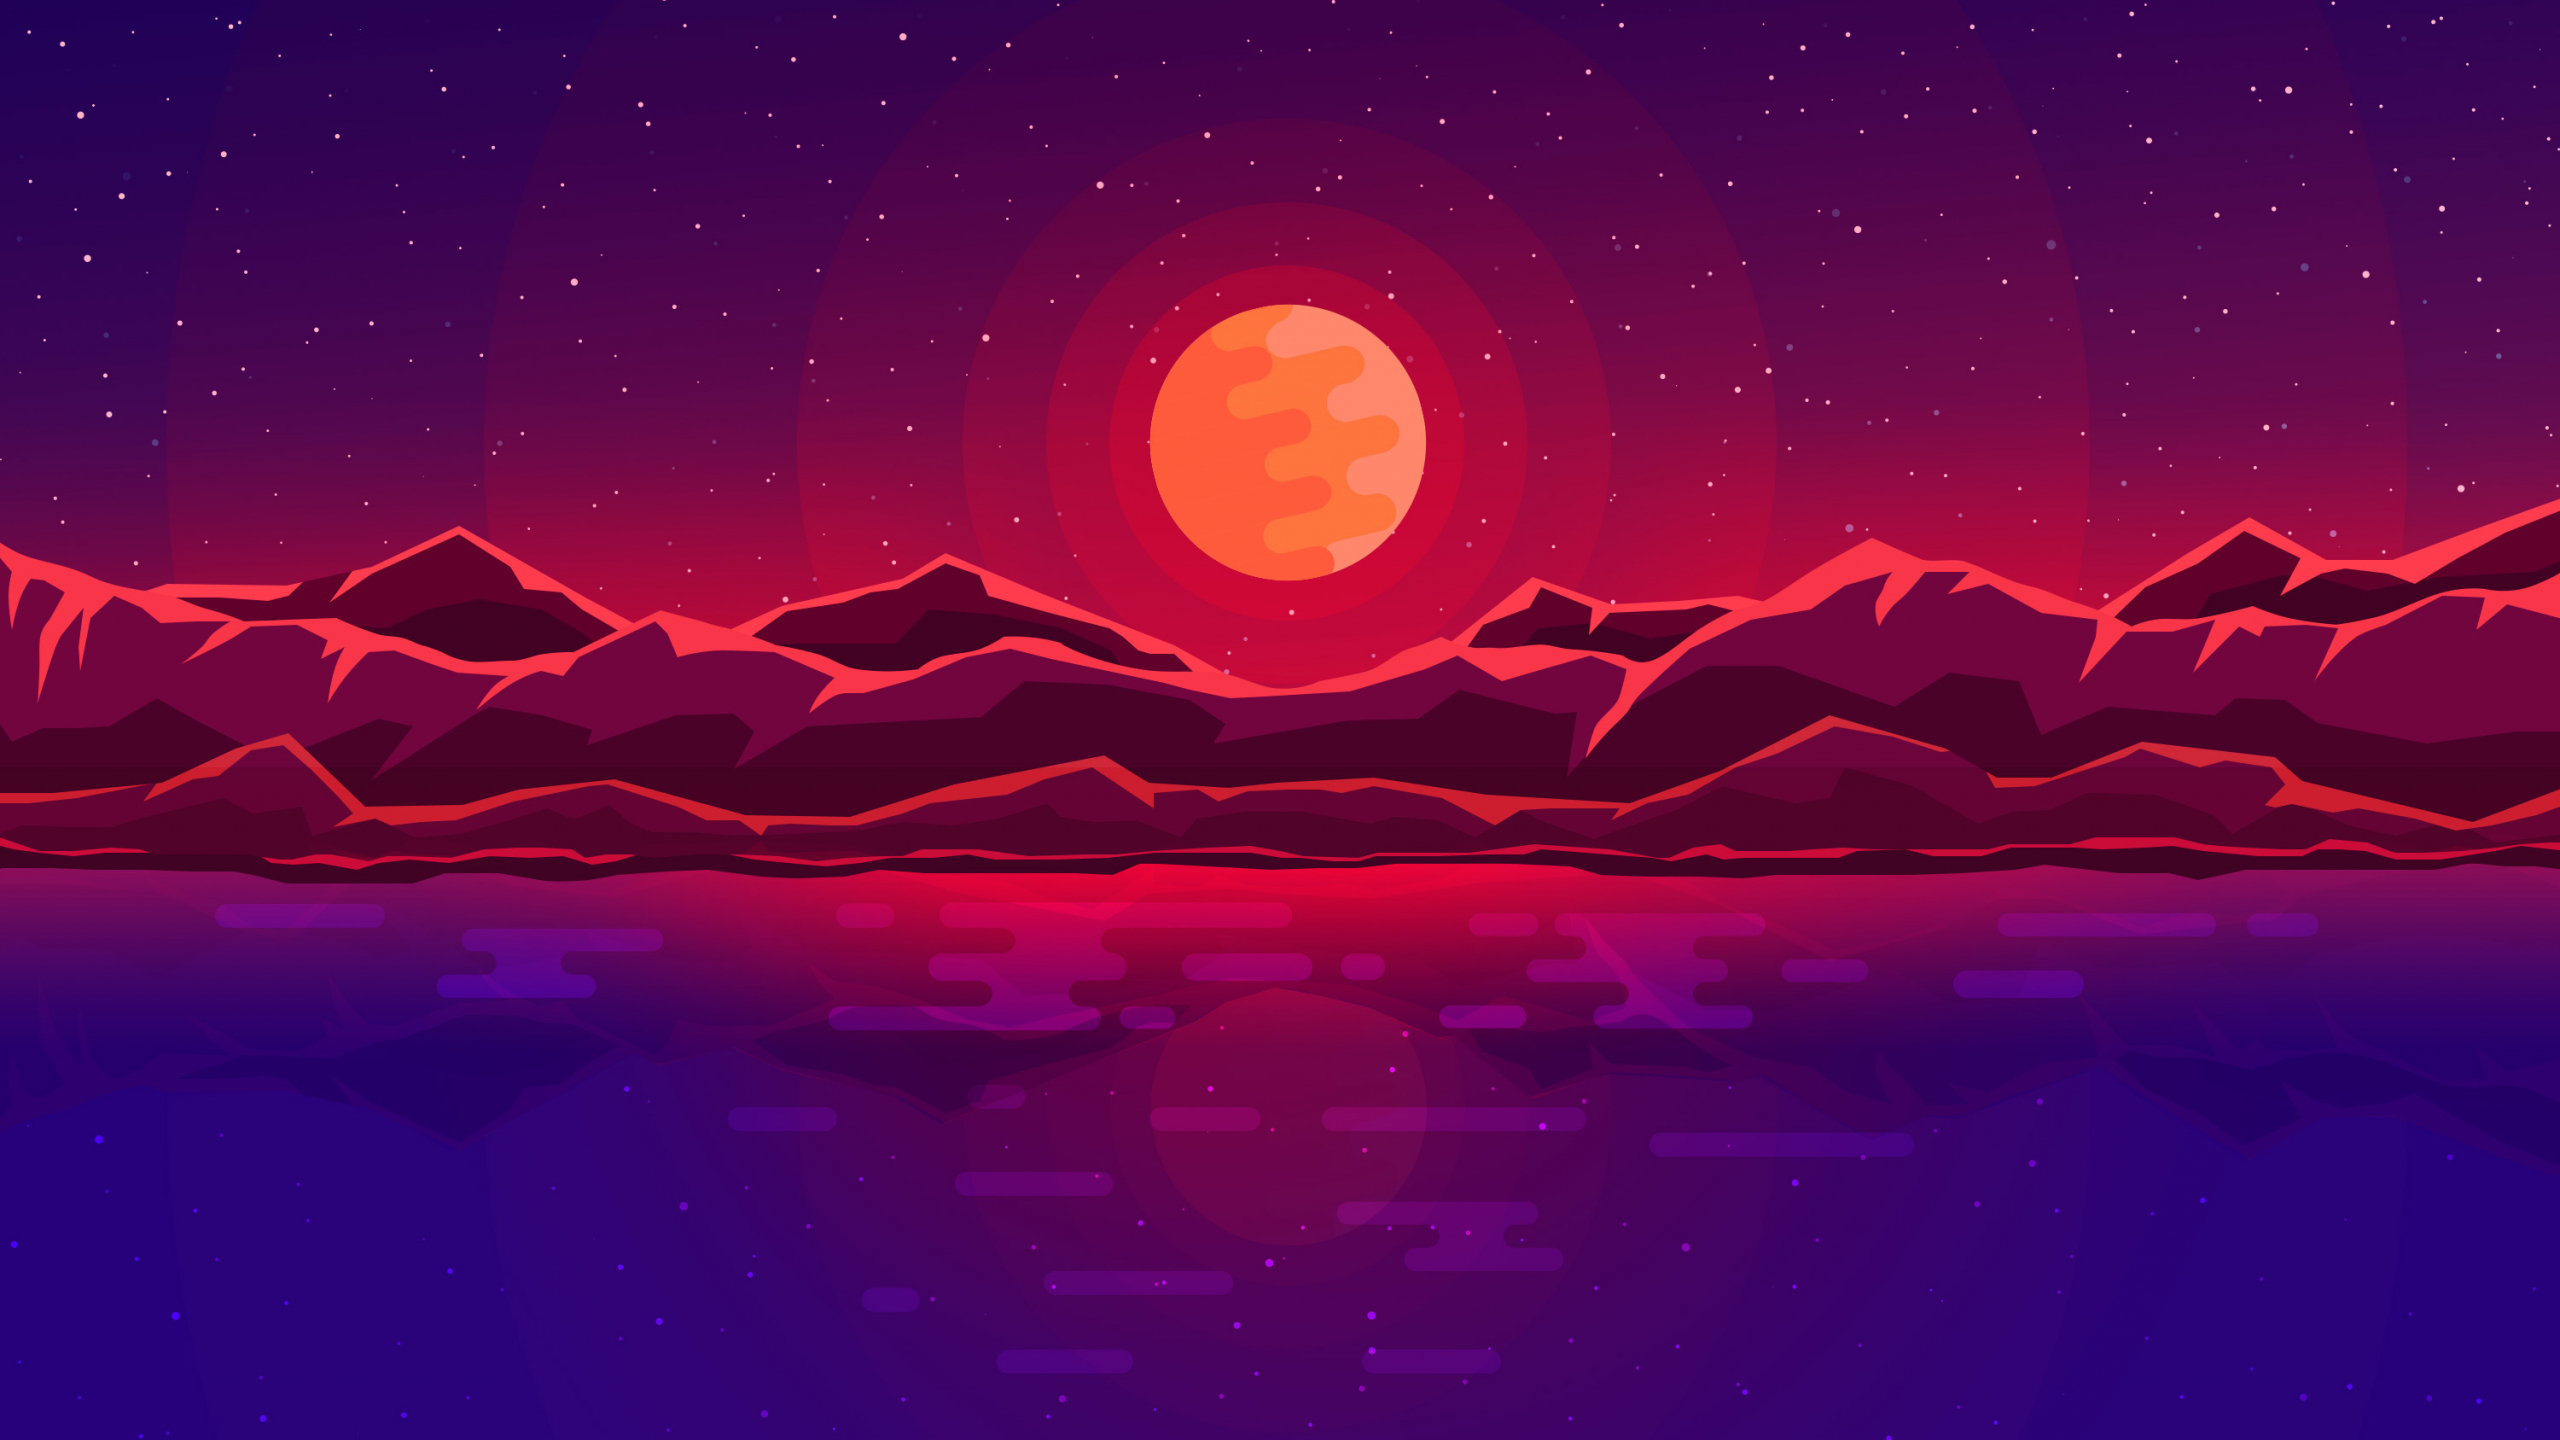 Download 2560x1440 Wallpaper Moon Rays Red Space Sky